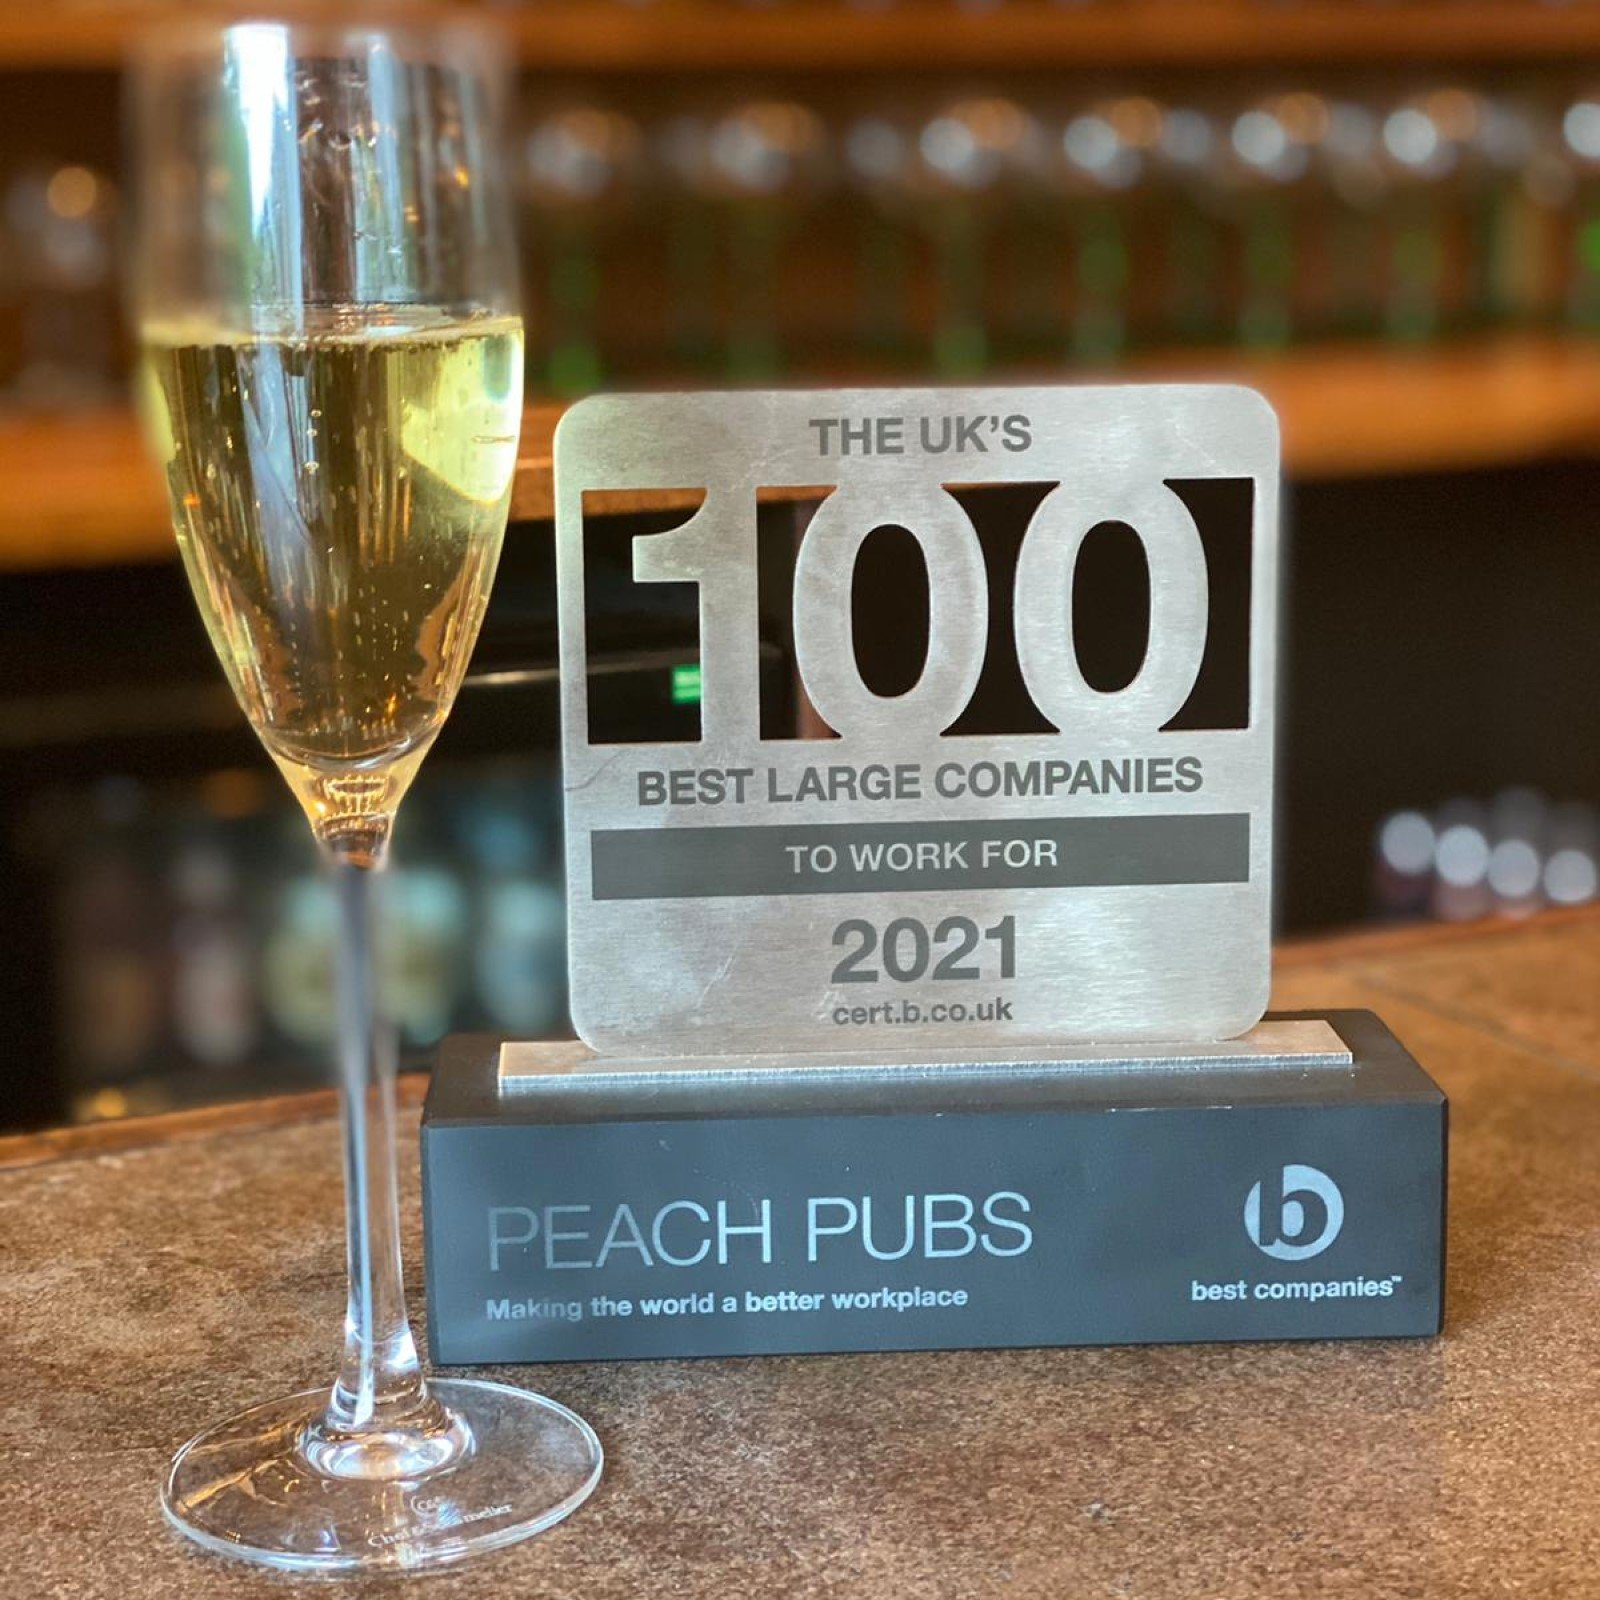 Oxfordshire pub company Peach named one of best companies to work for